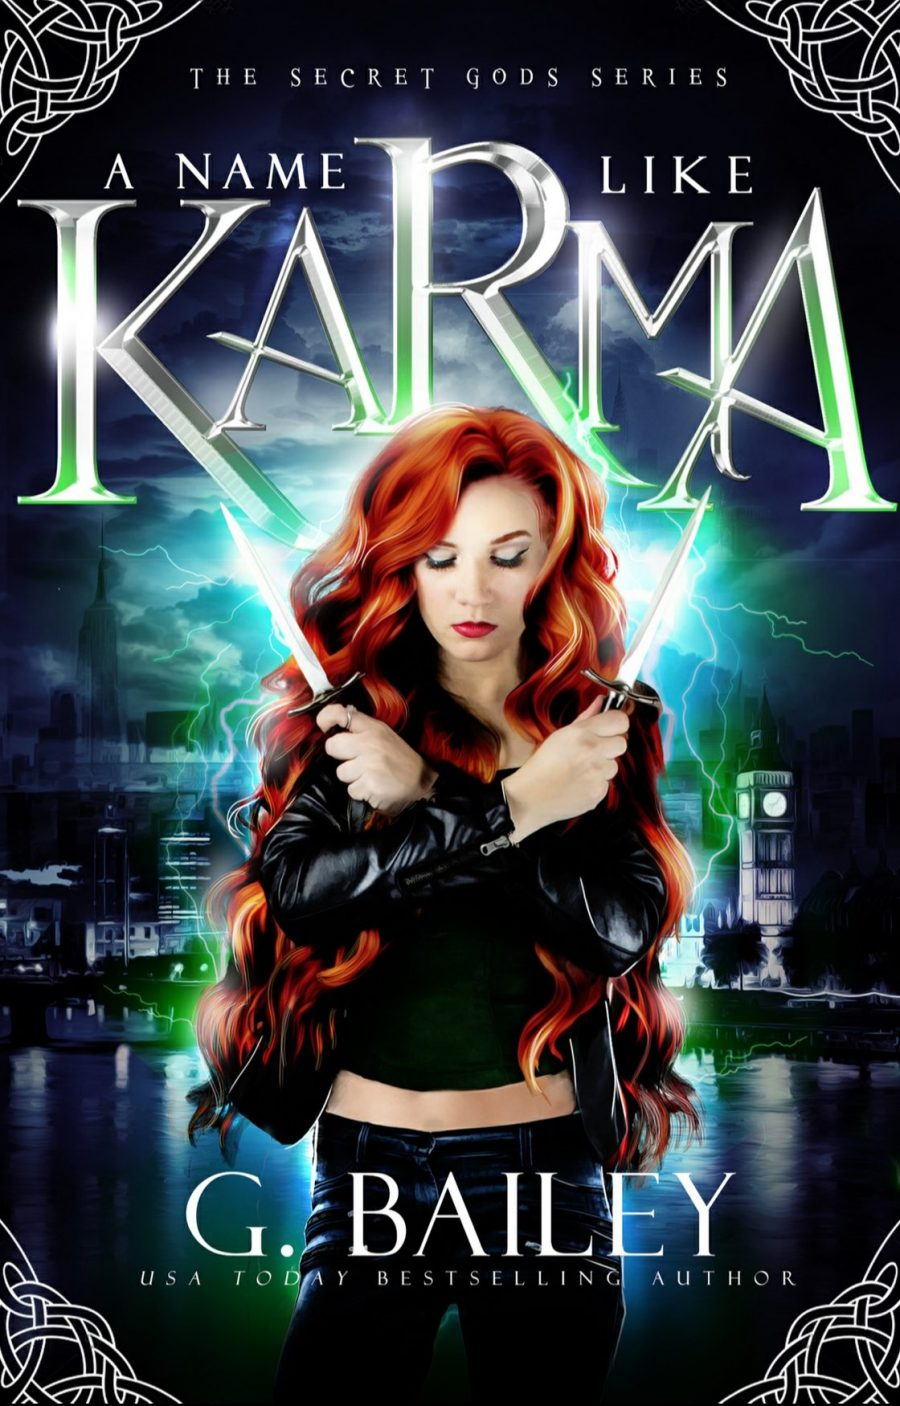 A Name Like Karma by G. Bailey - A Book Review #BookReview #RH #WhyChoose #ReverseHarem #PNR #Paranormal #SlowBurn #Gods